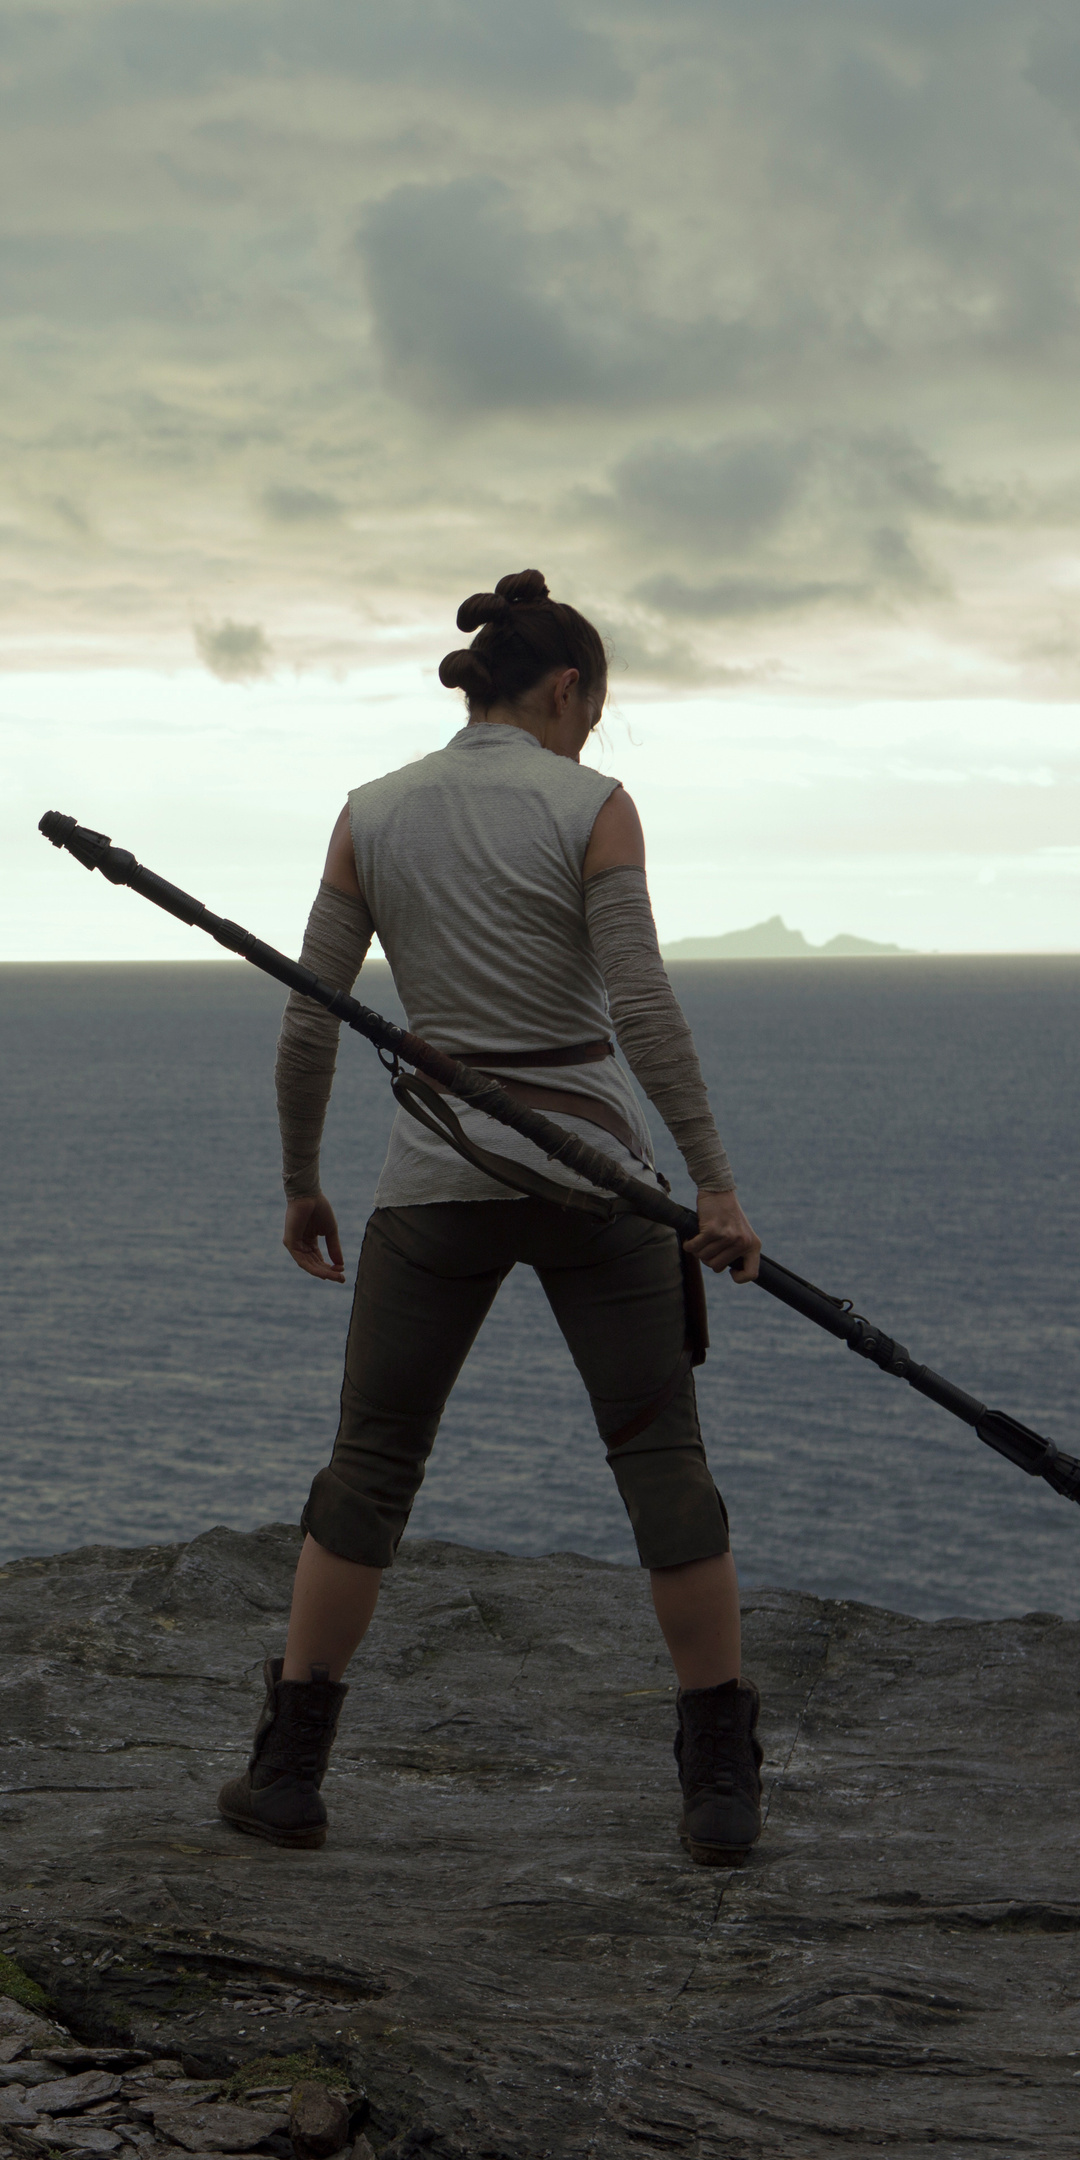 1080x2160 Daisy Ridley Rey Star Wars The Last Jedi 5k One Plus 5t Honor 7x Honor View 10 Lg Q6 Hd 4k Wallpapers Images Backgrounds Photos And Pictures